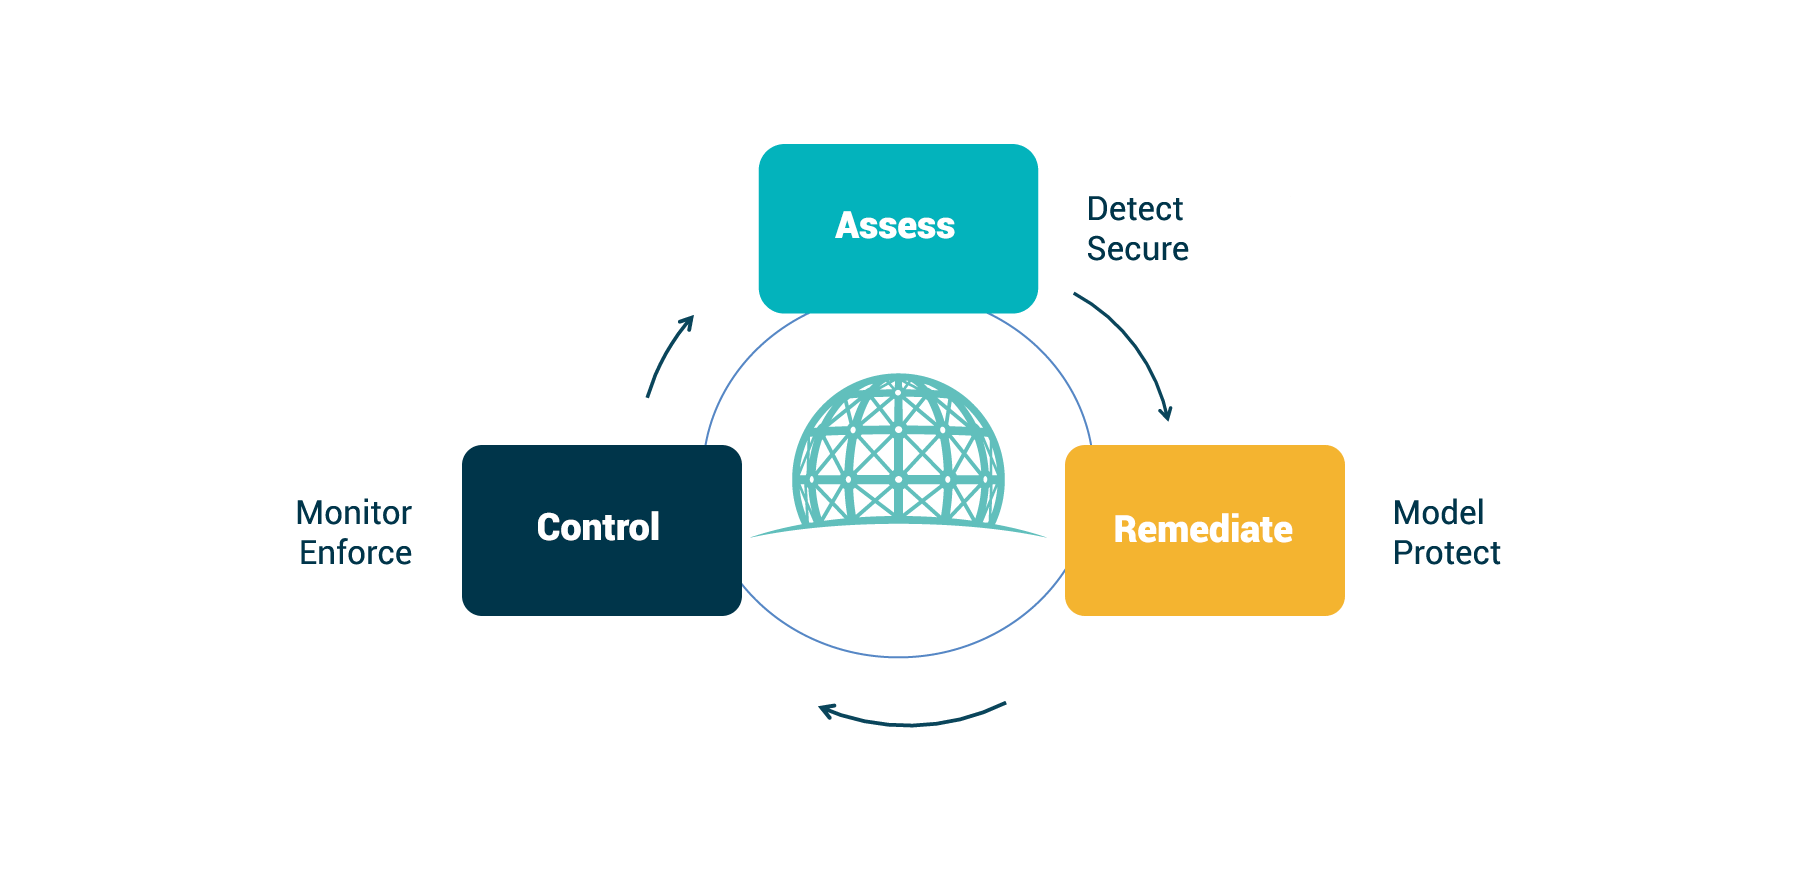 Public Cloud Active Protection Control-Assess-Remediate diagram